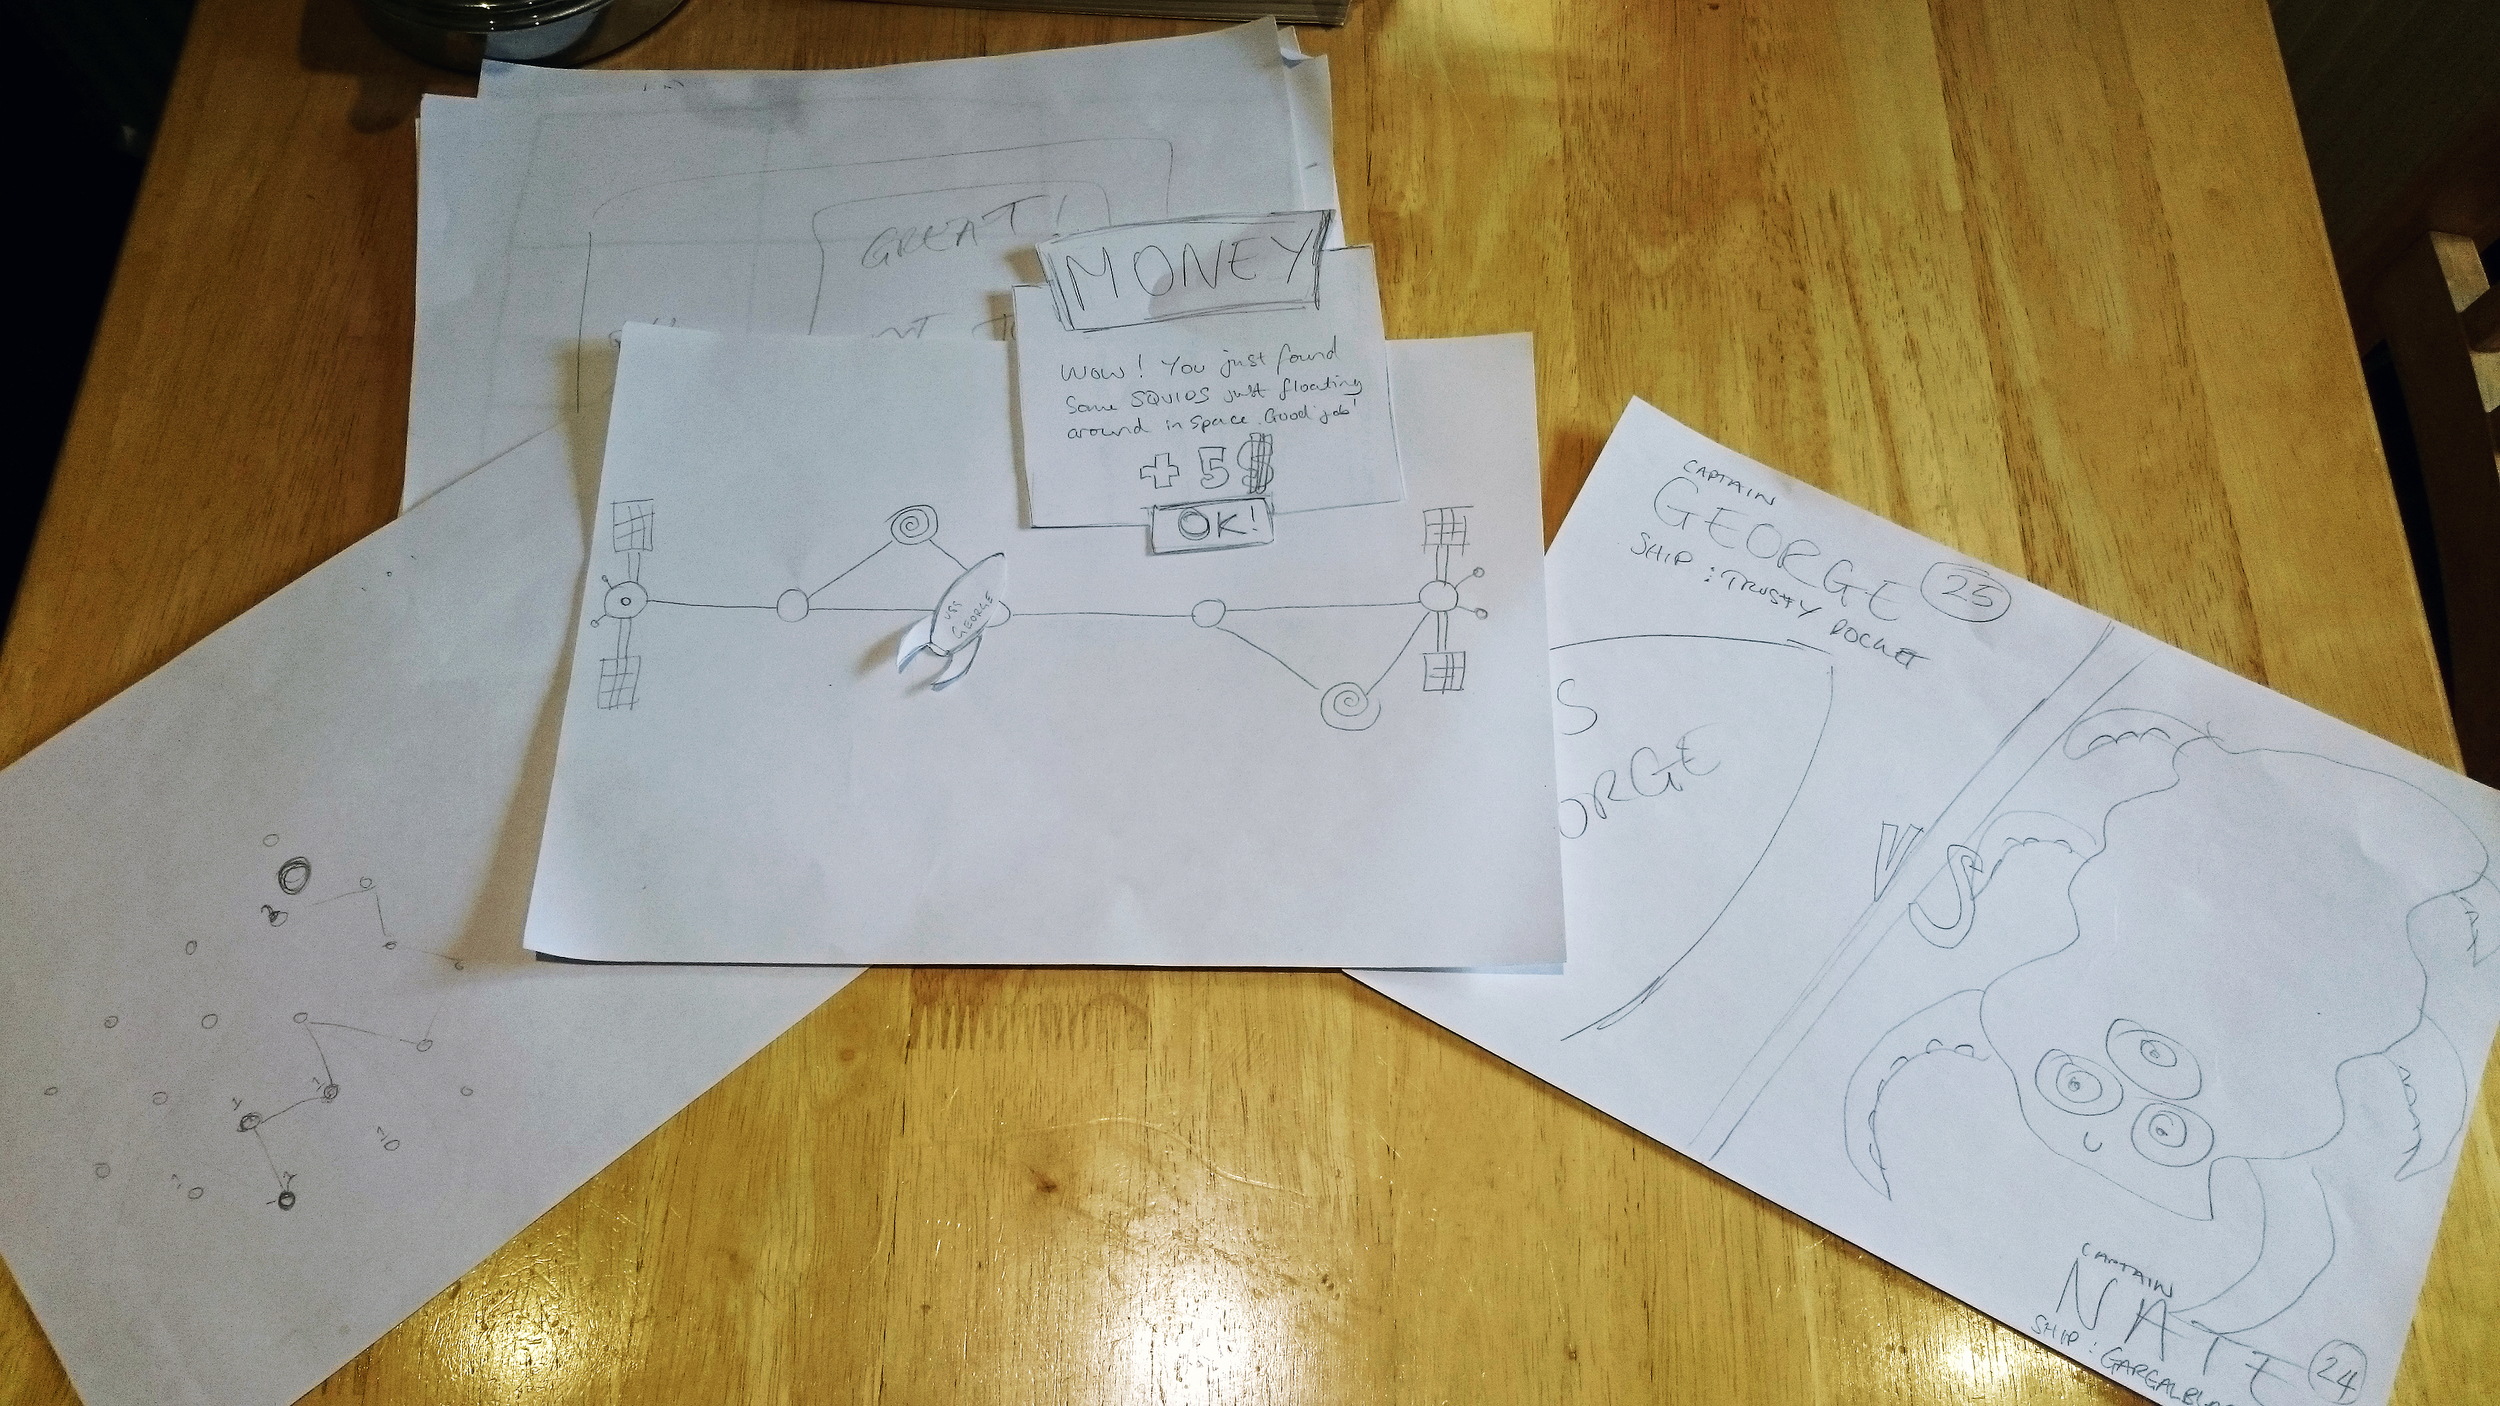 Early paper prototypes for Rocket Rumble's map system.